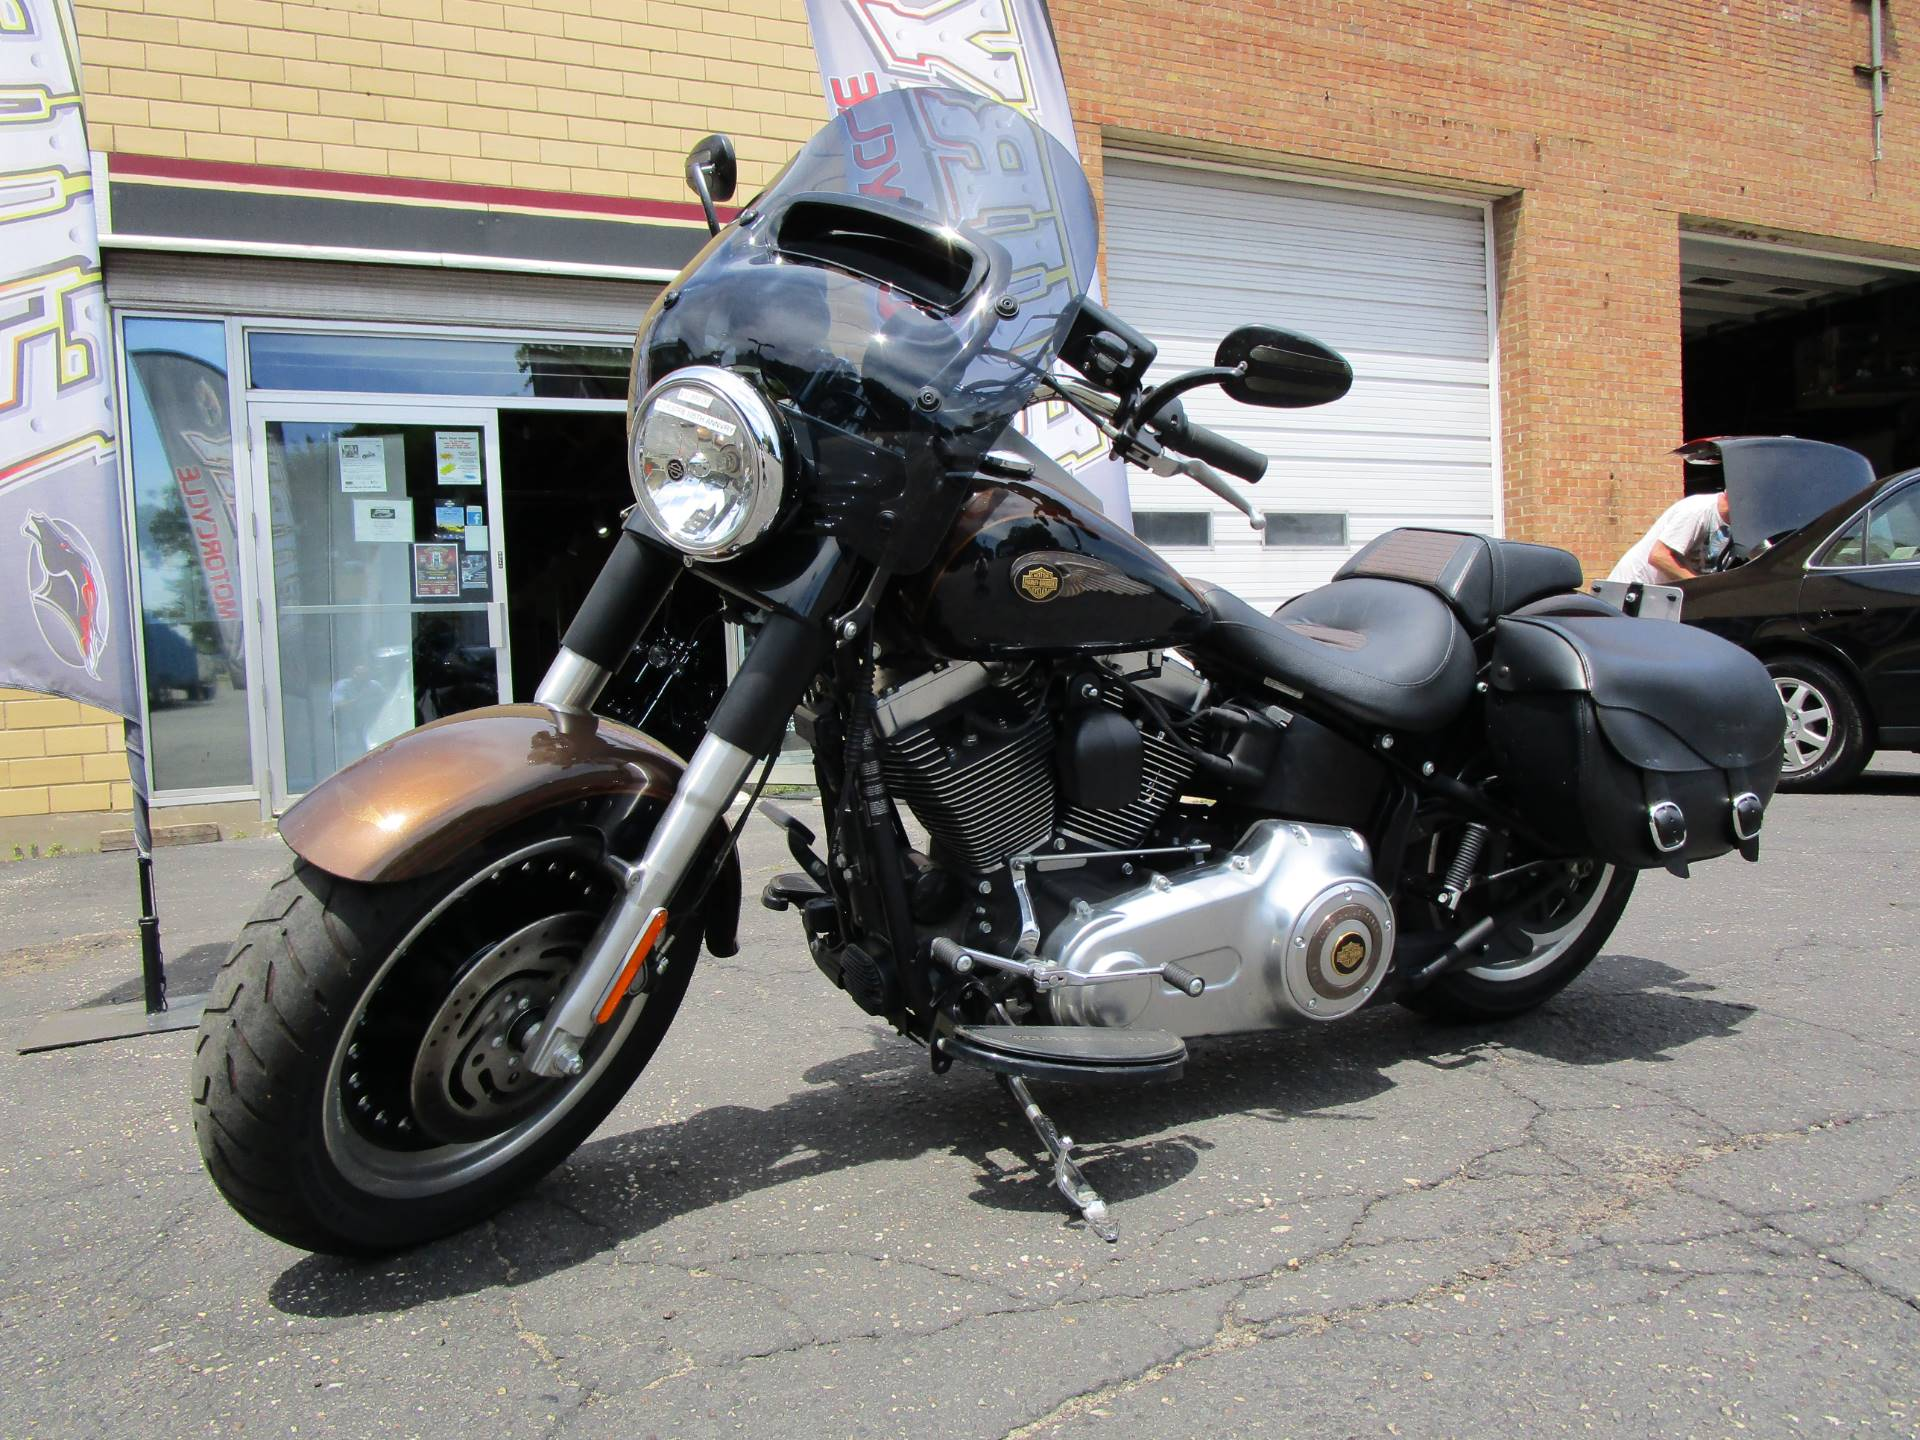 2013 Harley-Davidson Softail® Fat Boy® Lo 110th Anniversary Edition in South Saint Paul, Minnesota